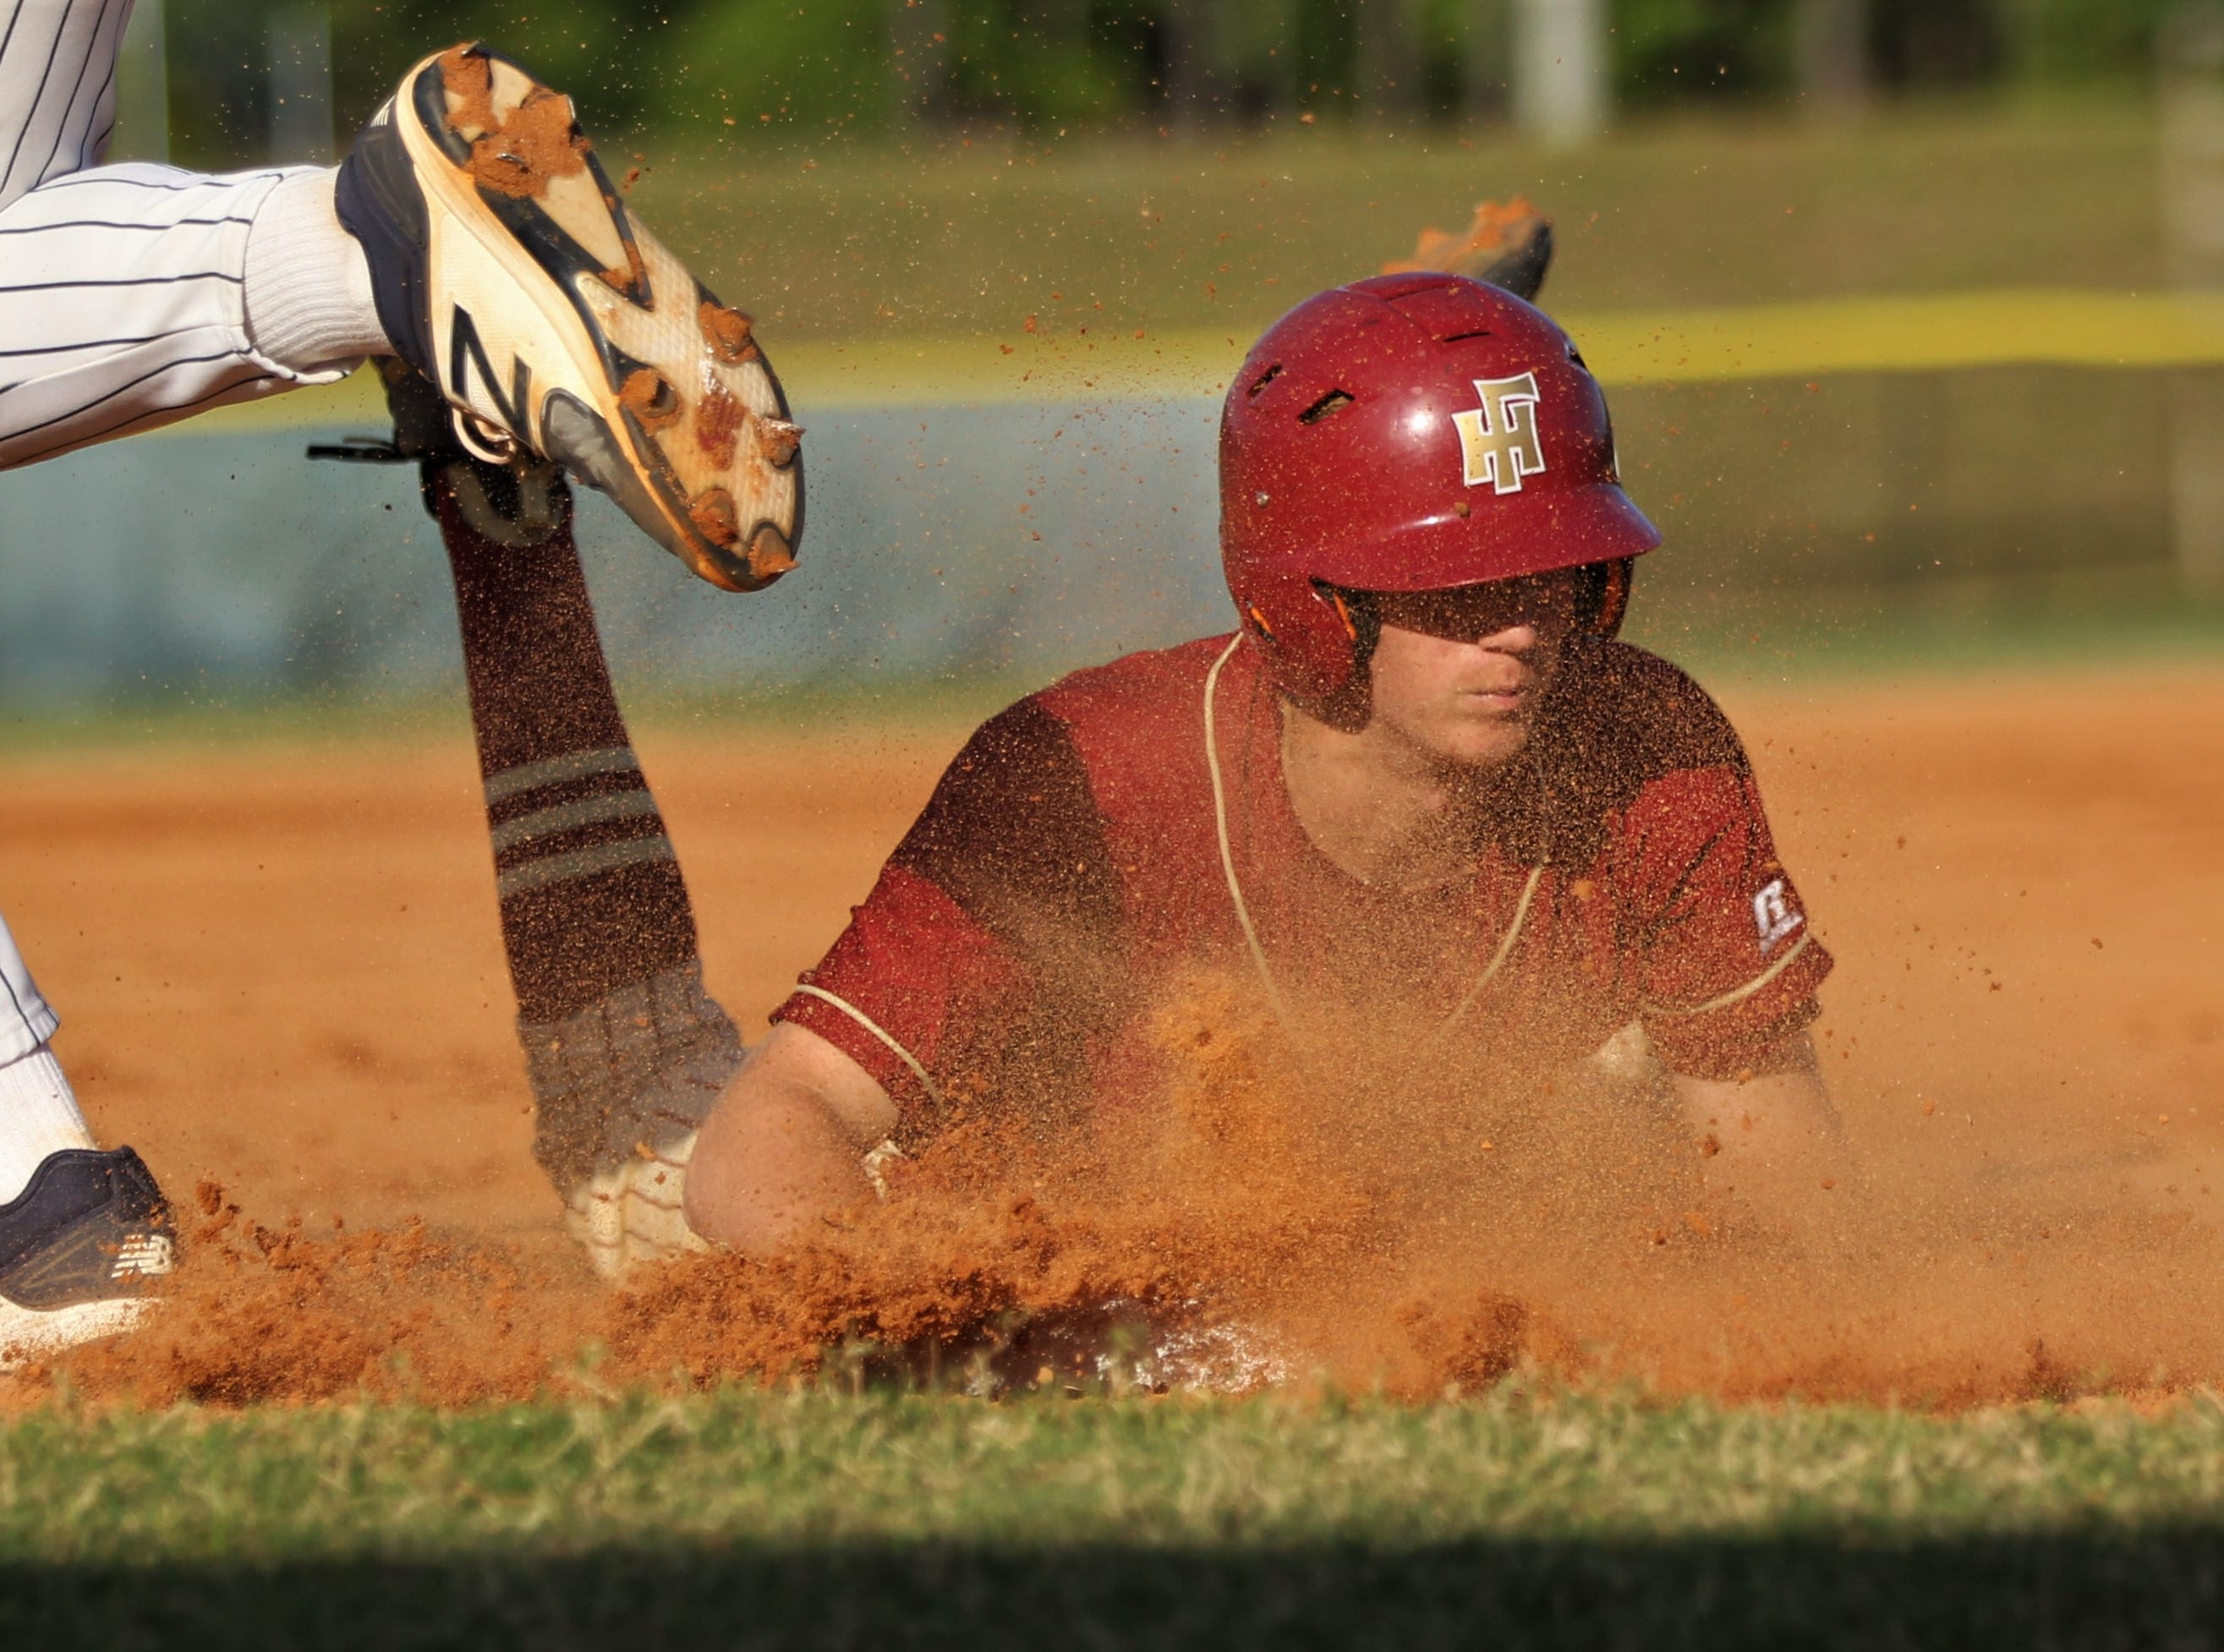 Florida High junior A.J. Thorp slides safely into third base as Florida High won 11-3 on the road at St. John Paul II on Tuesday, April 3, 2010.